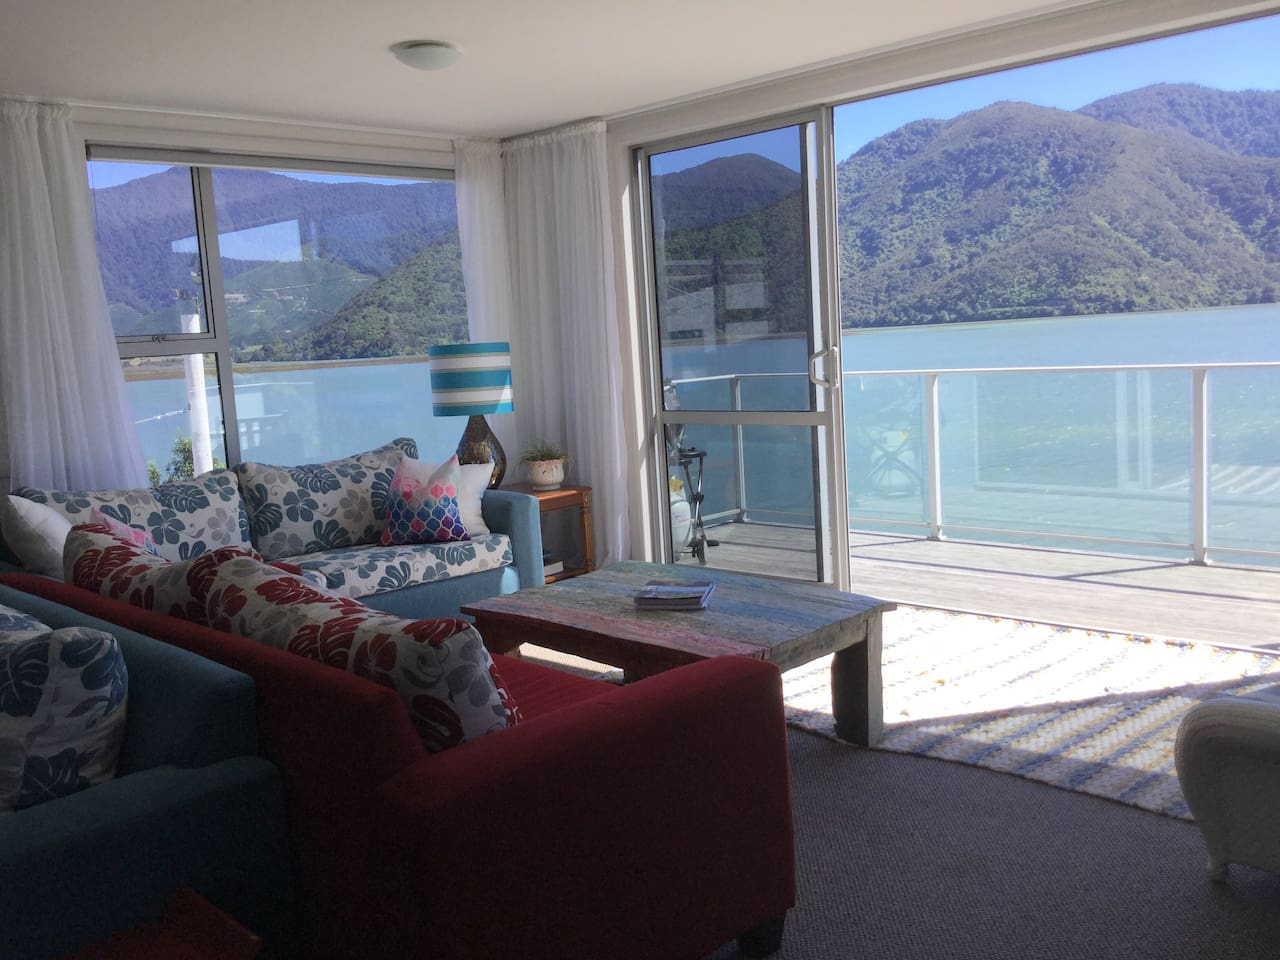 Views out to Pelorus Sound at high tide.